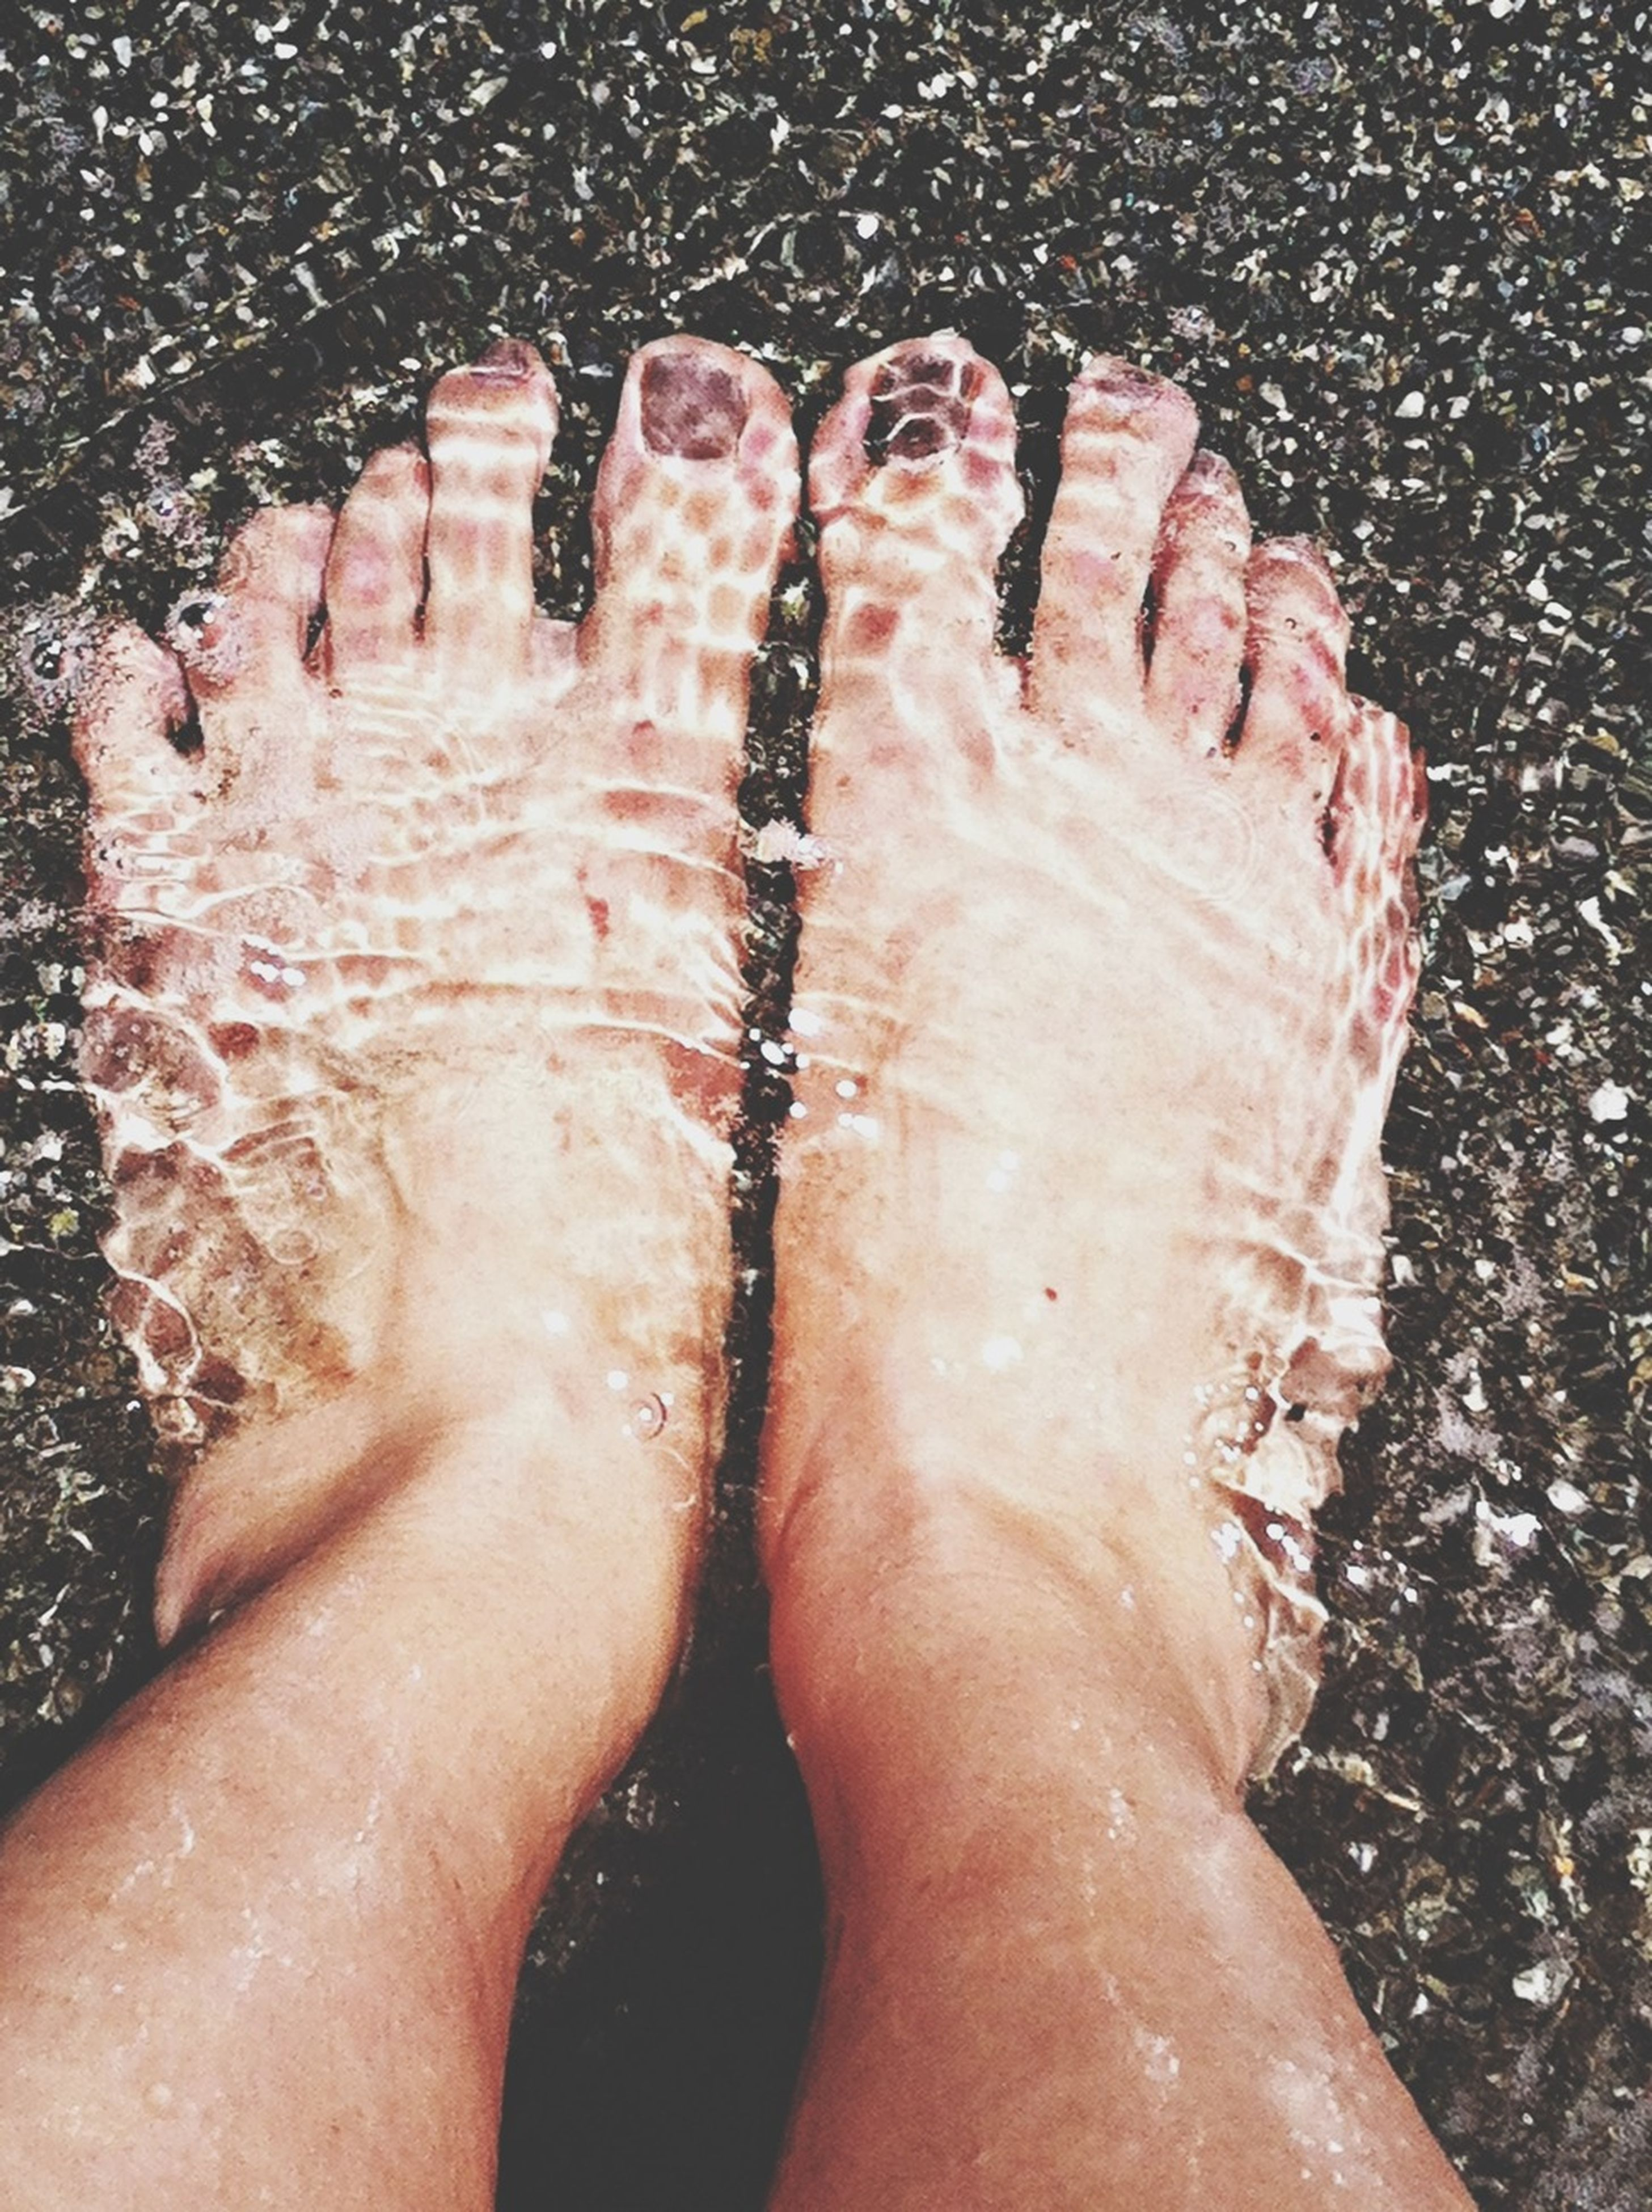 person, low section, water, wet, barefoot, beach, human foot, lifestyles, personal perspective, sand, high angle view, leisure activity, part of, unrecognizable person, close-up